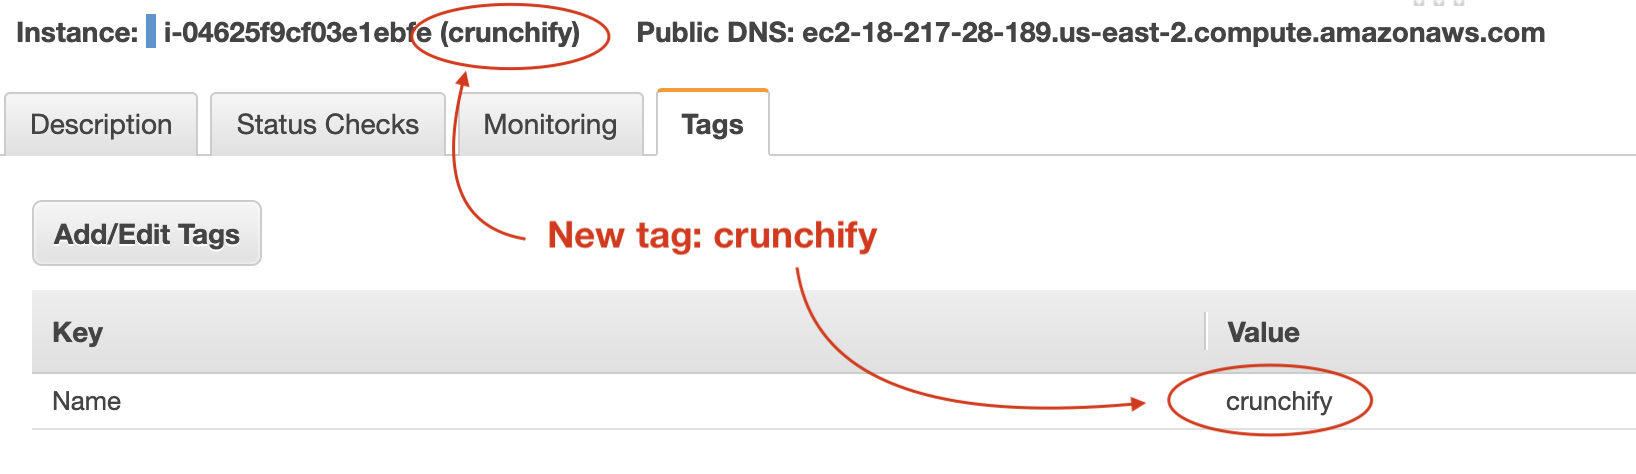 Amazon EC2 - new tag and name created - Crunchify Tips